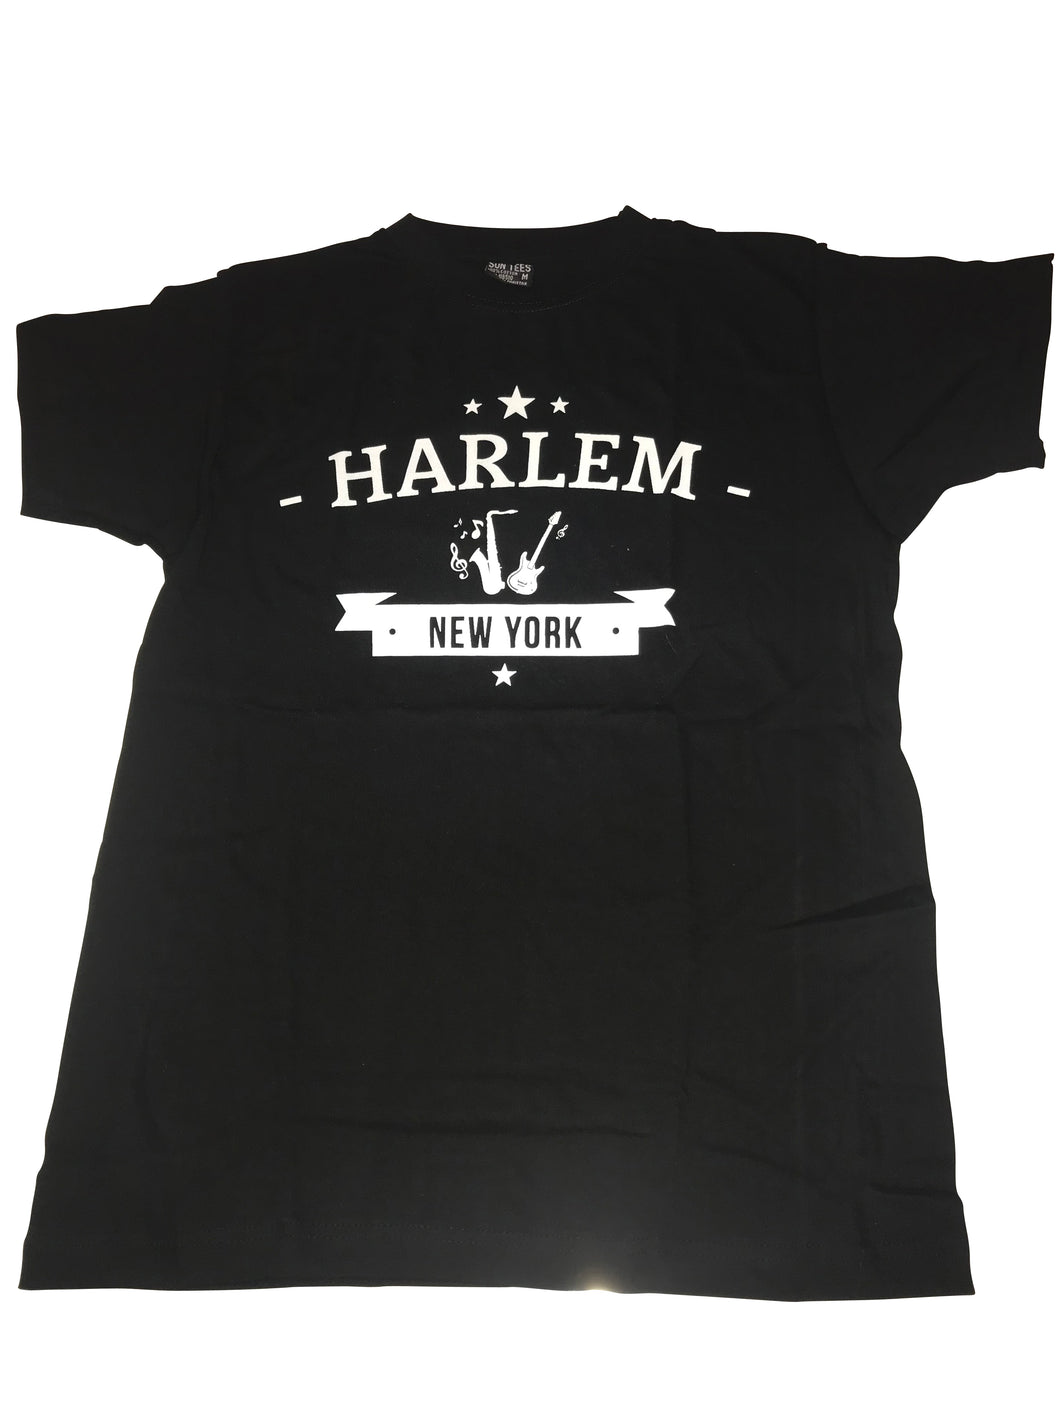 Harlem Star T-shirt - Mean-Tees.com